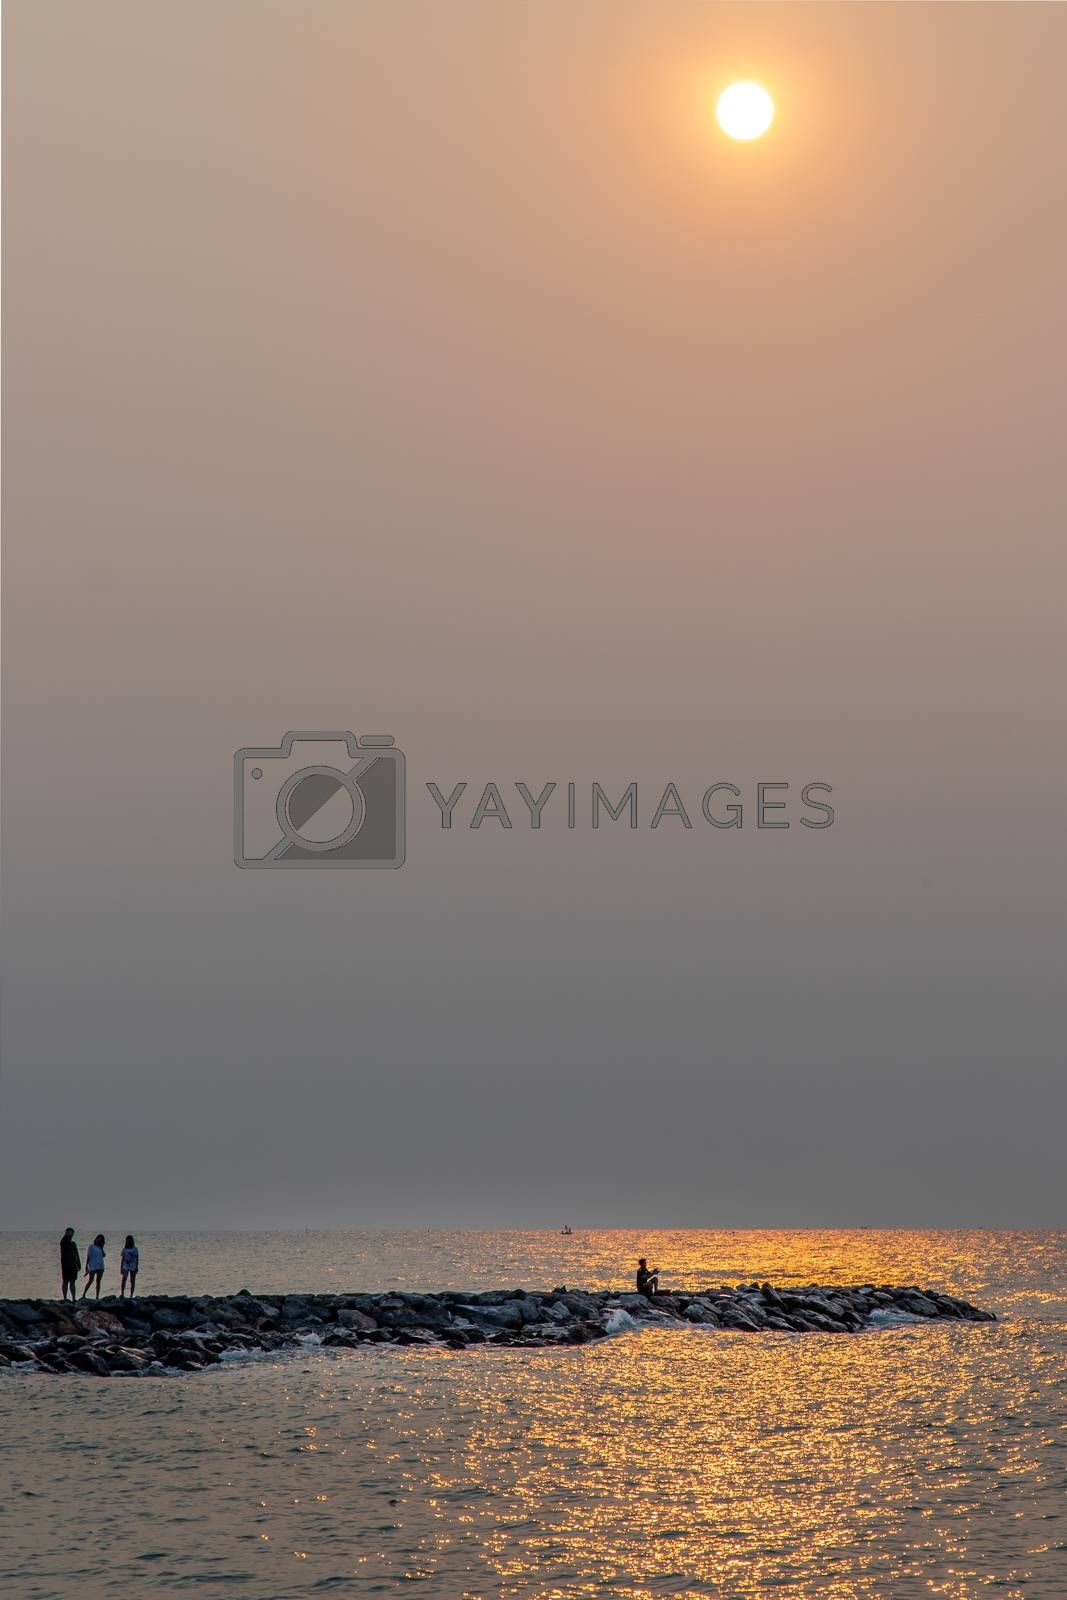 Phetchaburi,Thailand - Mar 15, 2020 : Angler with fishing rod and tourist on at the Calm beach in the morning. Selective focus.